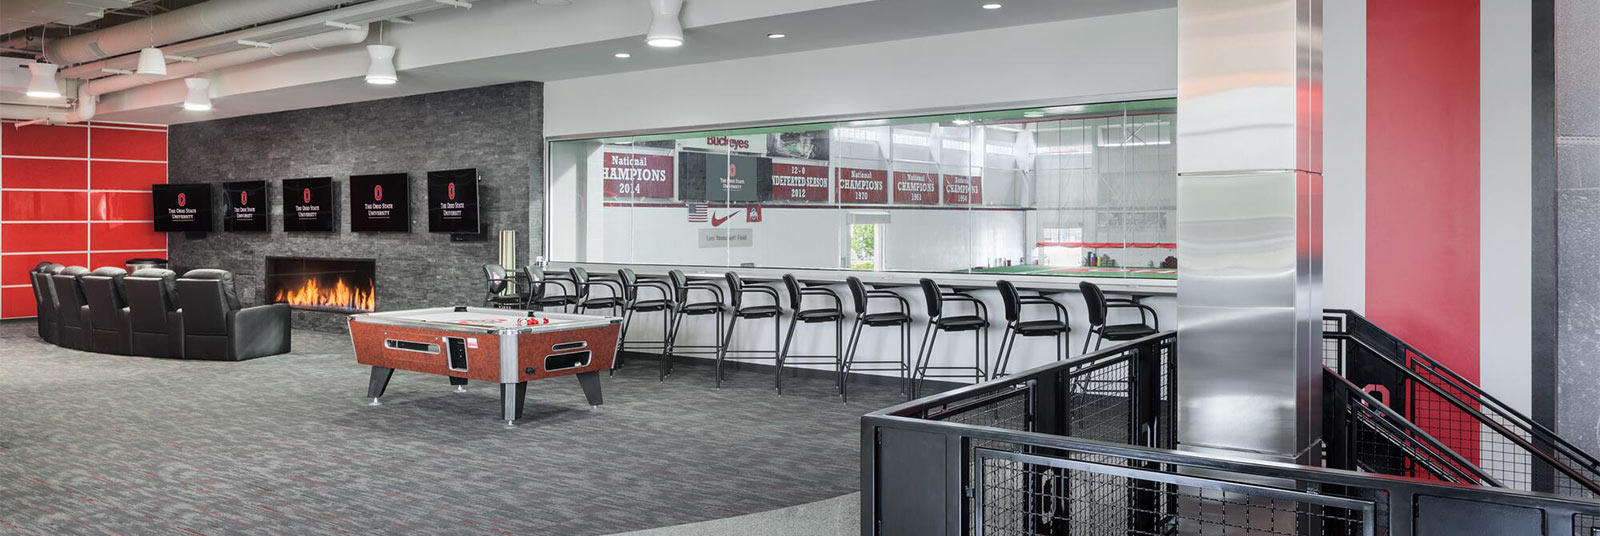 View of the upstairs player lounge area with window overlooking recreation room at the renovated Woody Hayes Athletic Center at The Ohio State University.